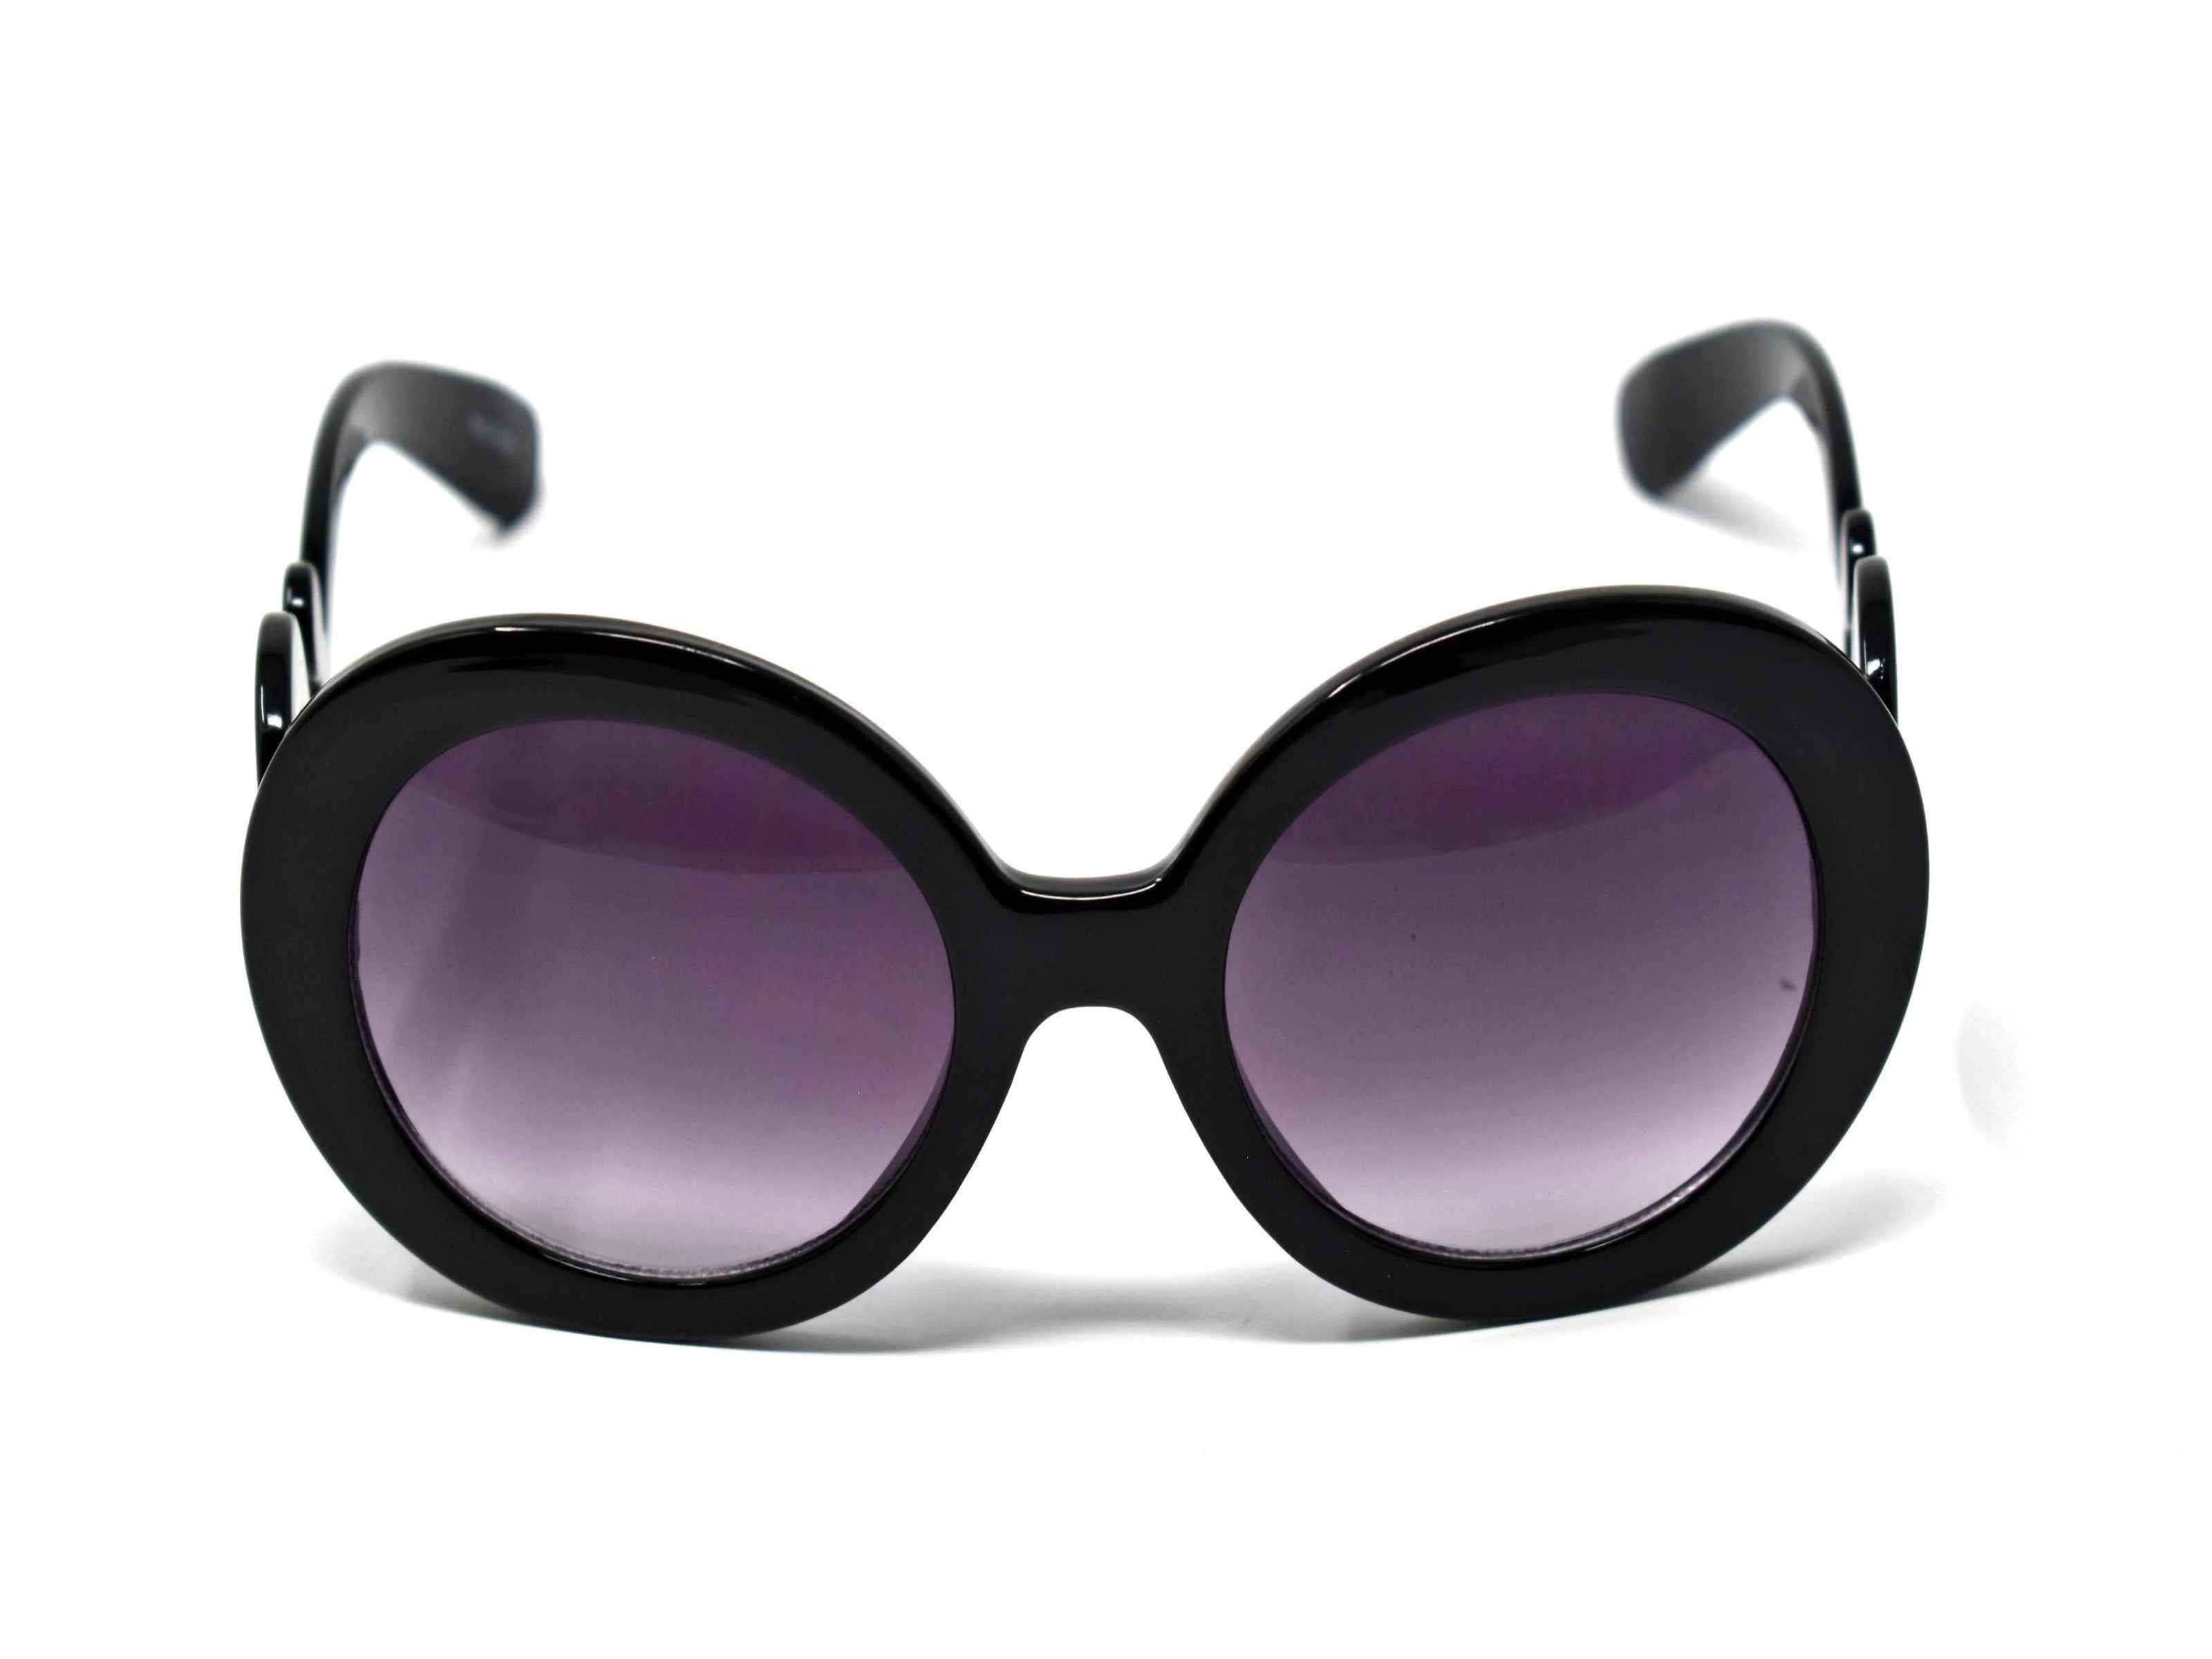 Be prepared to add our Clover Black frame glasses with swirl handle and a black lens to your top 10 go too favs.